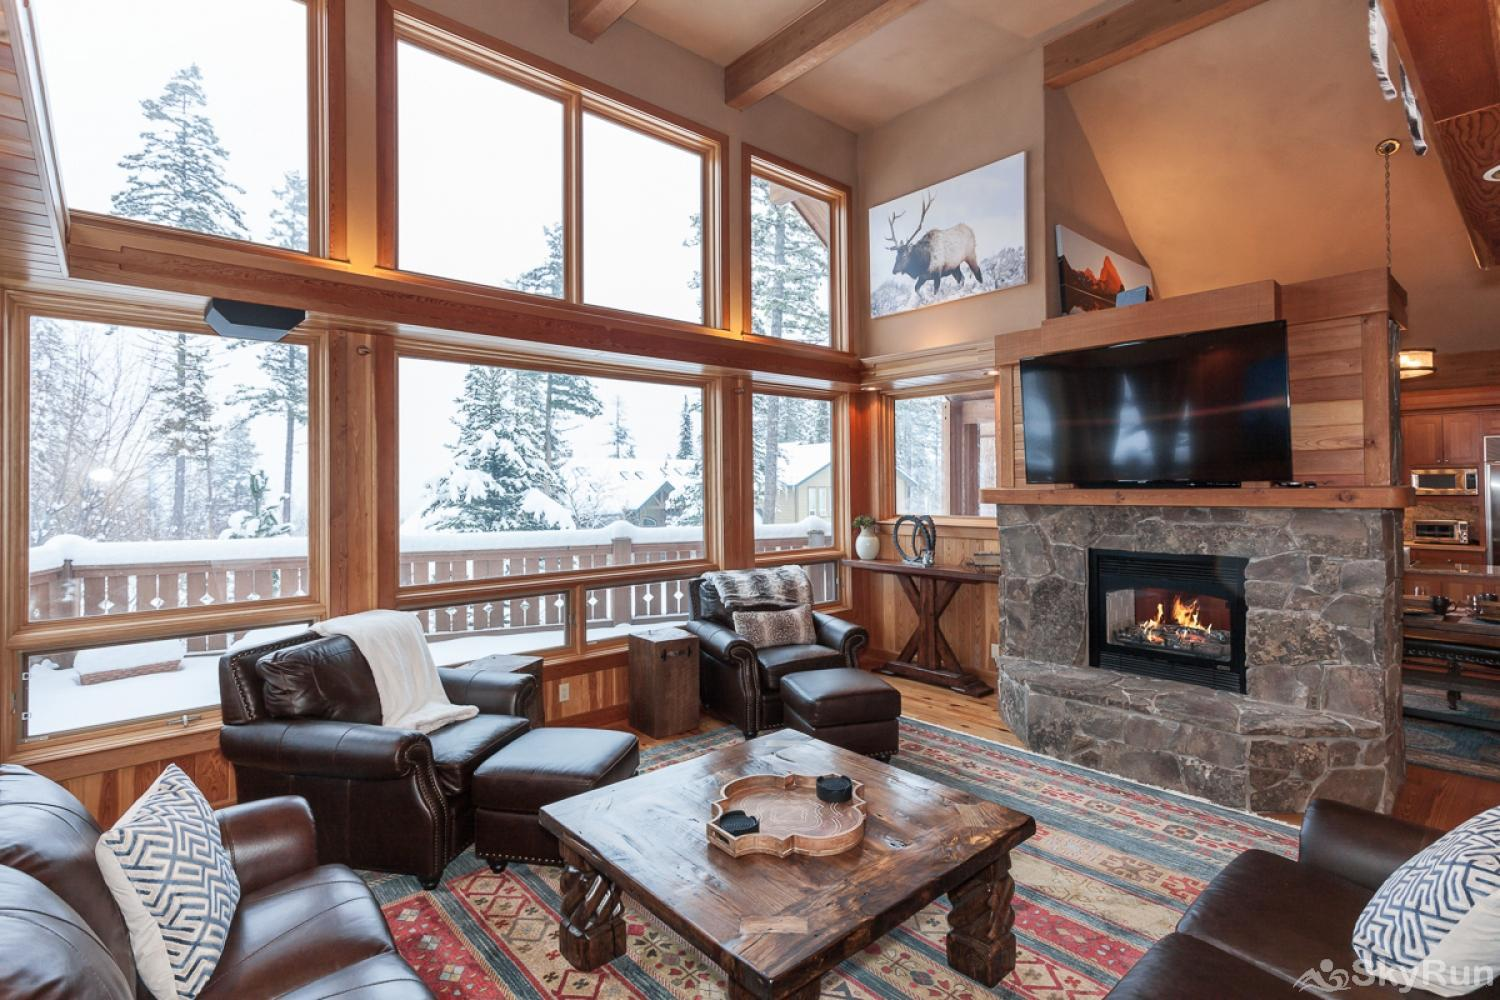 Highland Huckleberry Lodge Relax and unwind in the living room while enjoying the fire, TV and picture windows with views of the ski runs